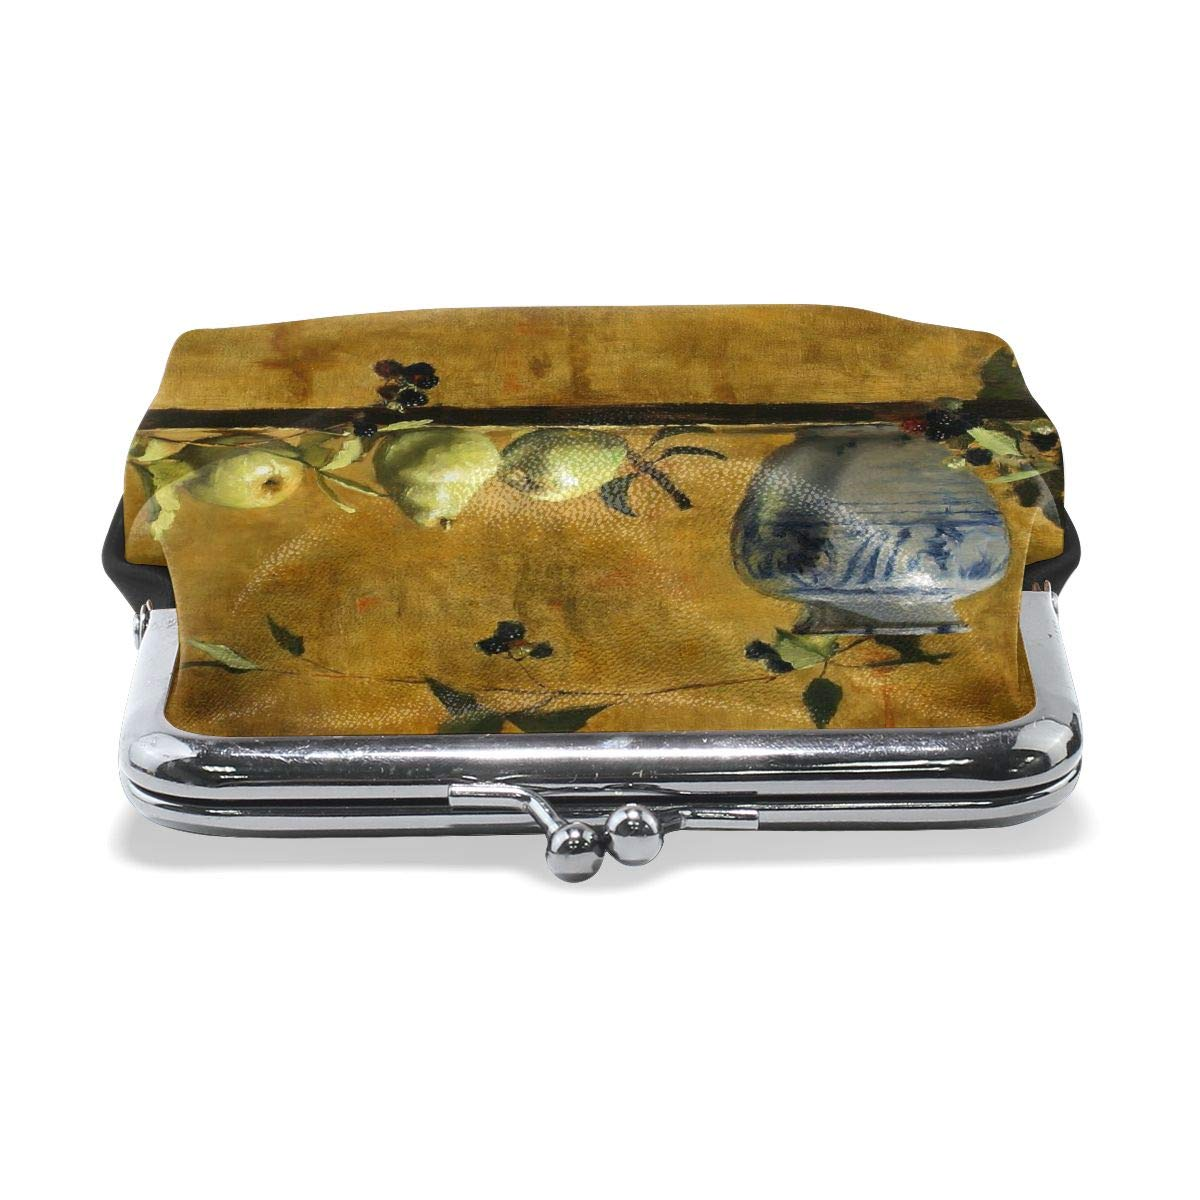 Exquisite Static Art Fruits Cash Buckle Coin Purse For Womens